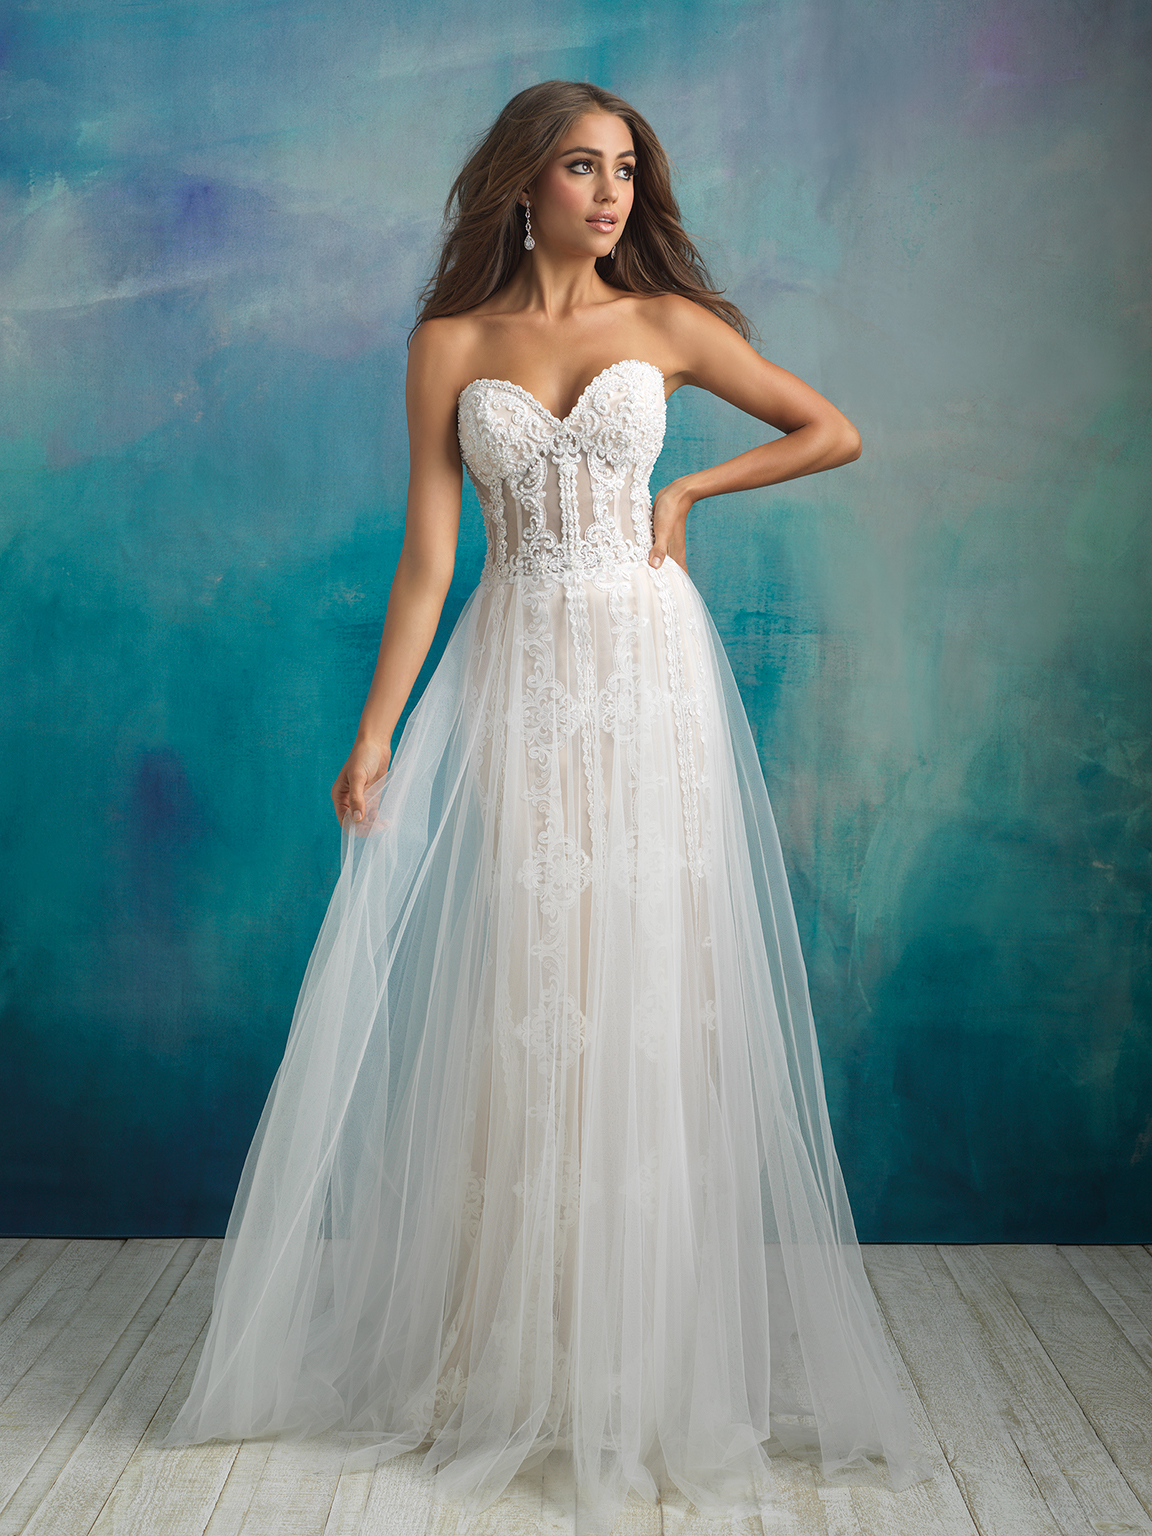 Strapless Sweetheart Neckline Beaded And Embroidered Sheath Wedding ...